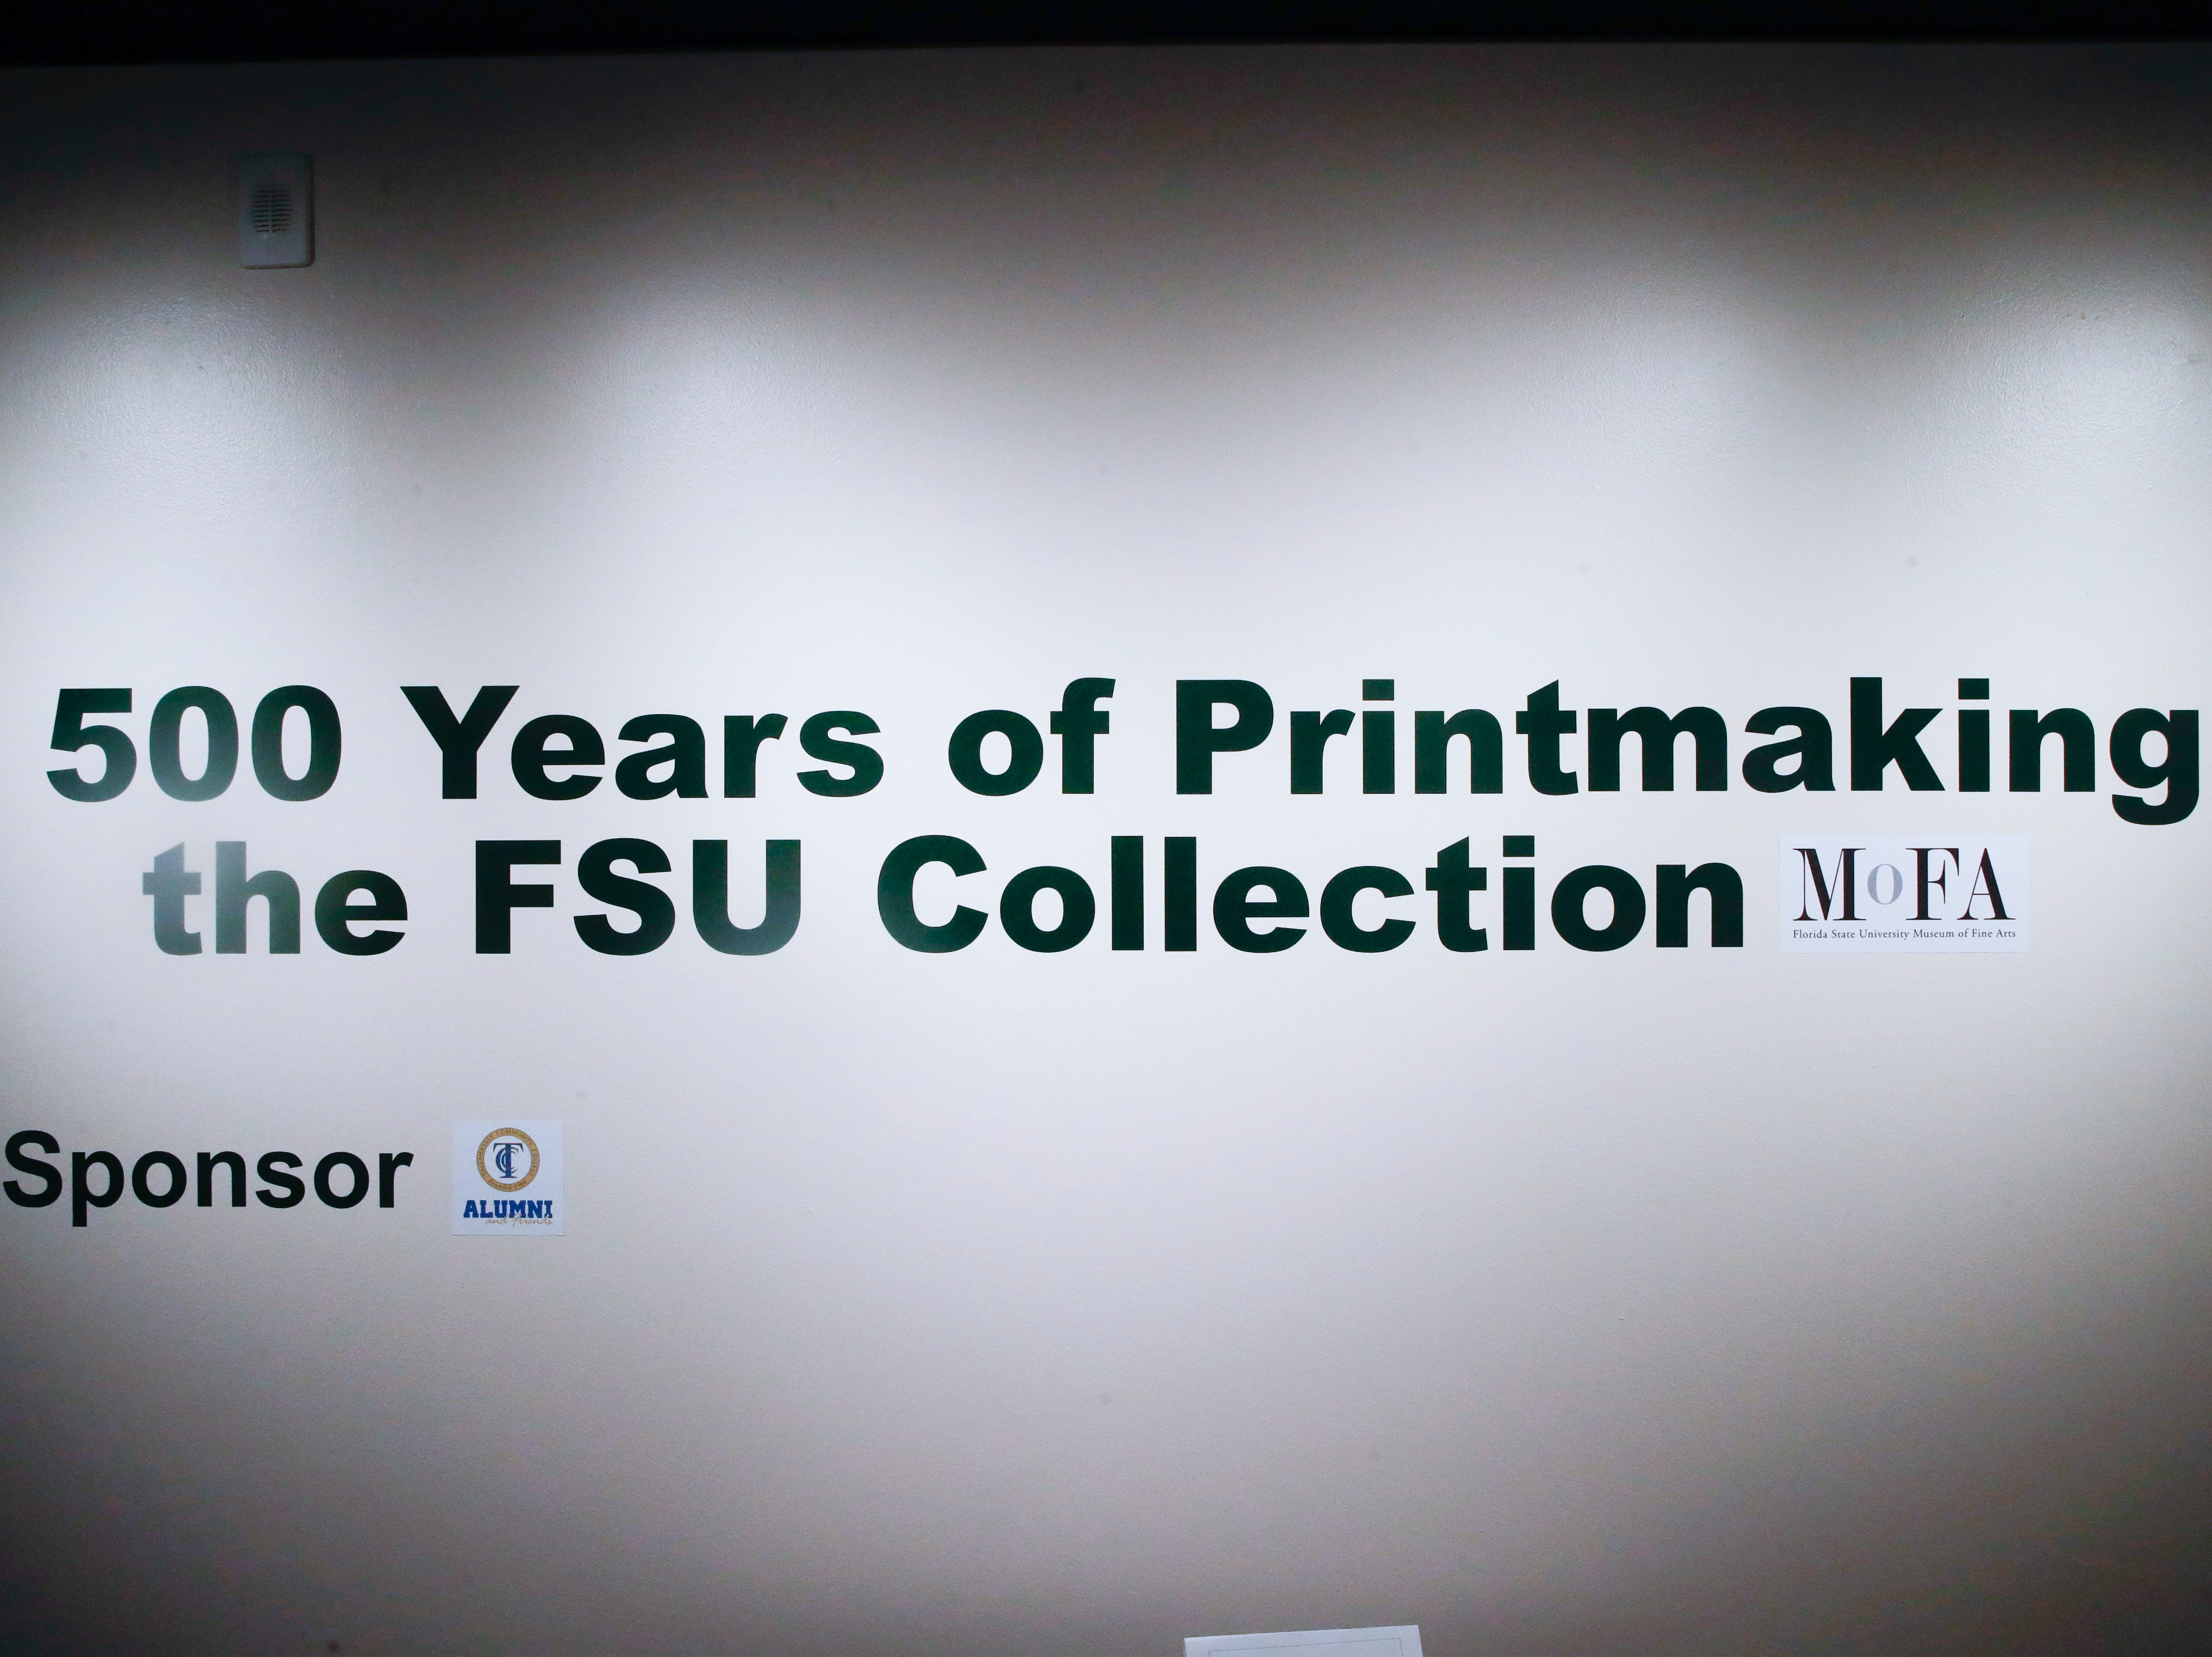 """500 Years of Printmaking: the FSU Collection"" is on display now in the TCC Fine Arts Gallery on the TCC campus."